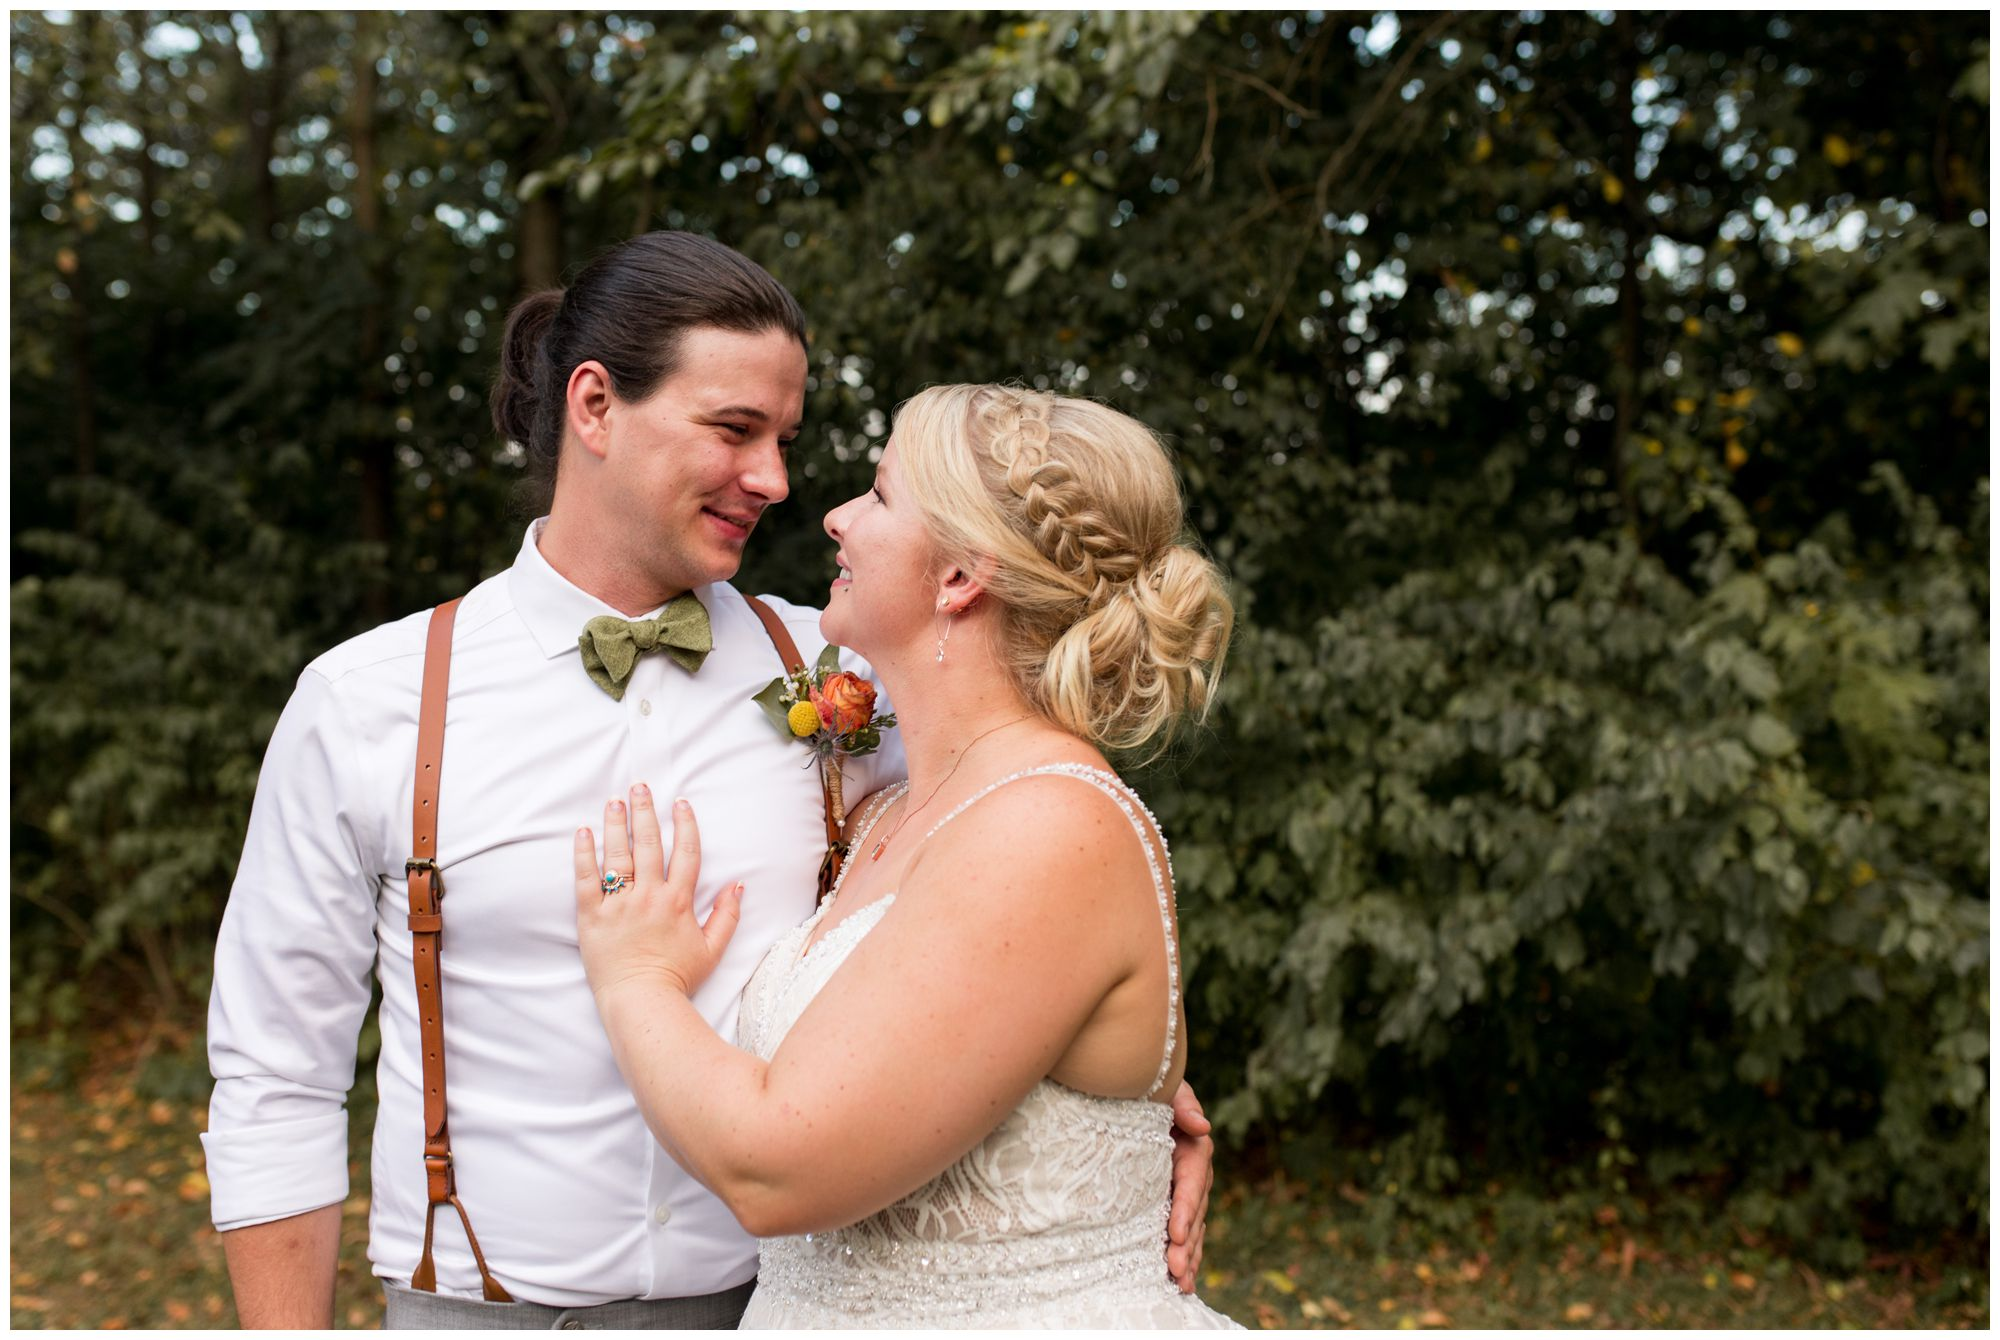 bride and groom Forest Park wedding portraits in Noblesville Indiana